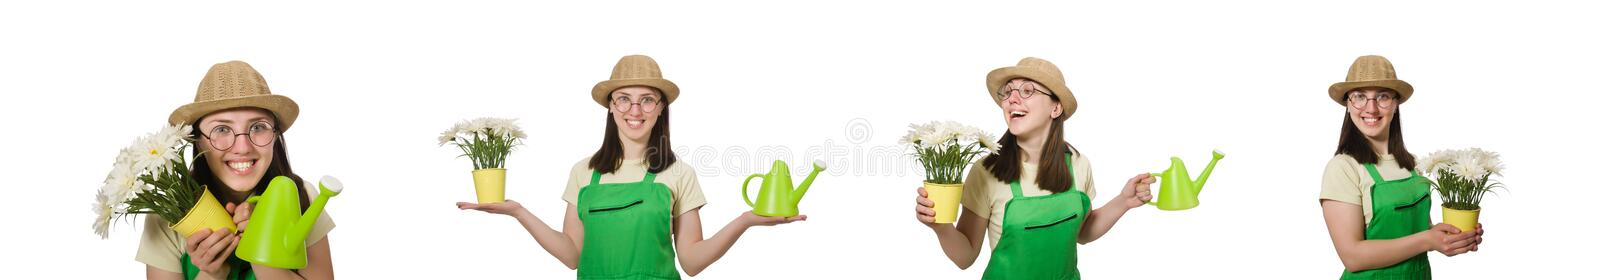 The girl watering plants on white royalty free stock image